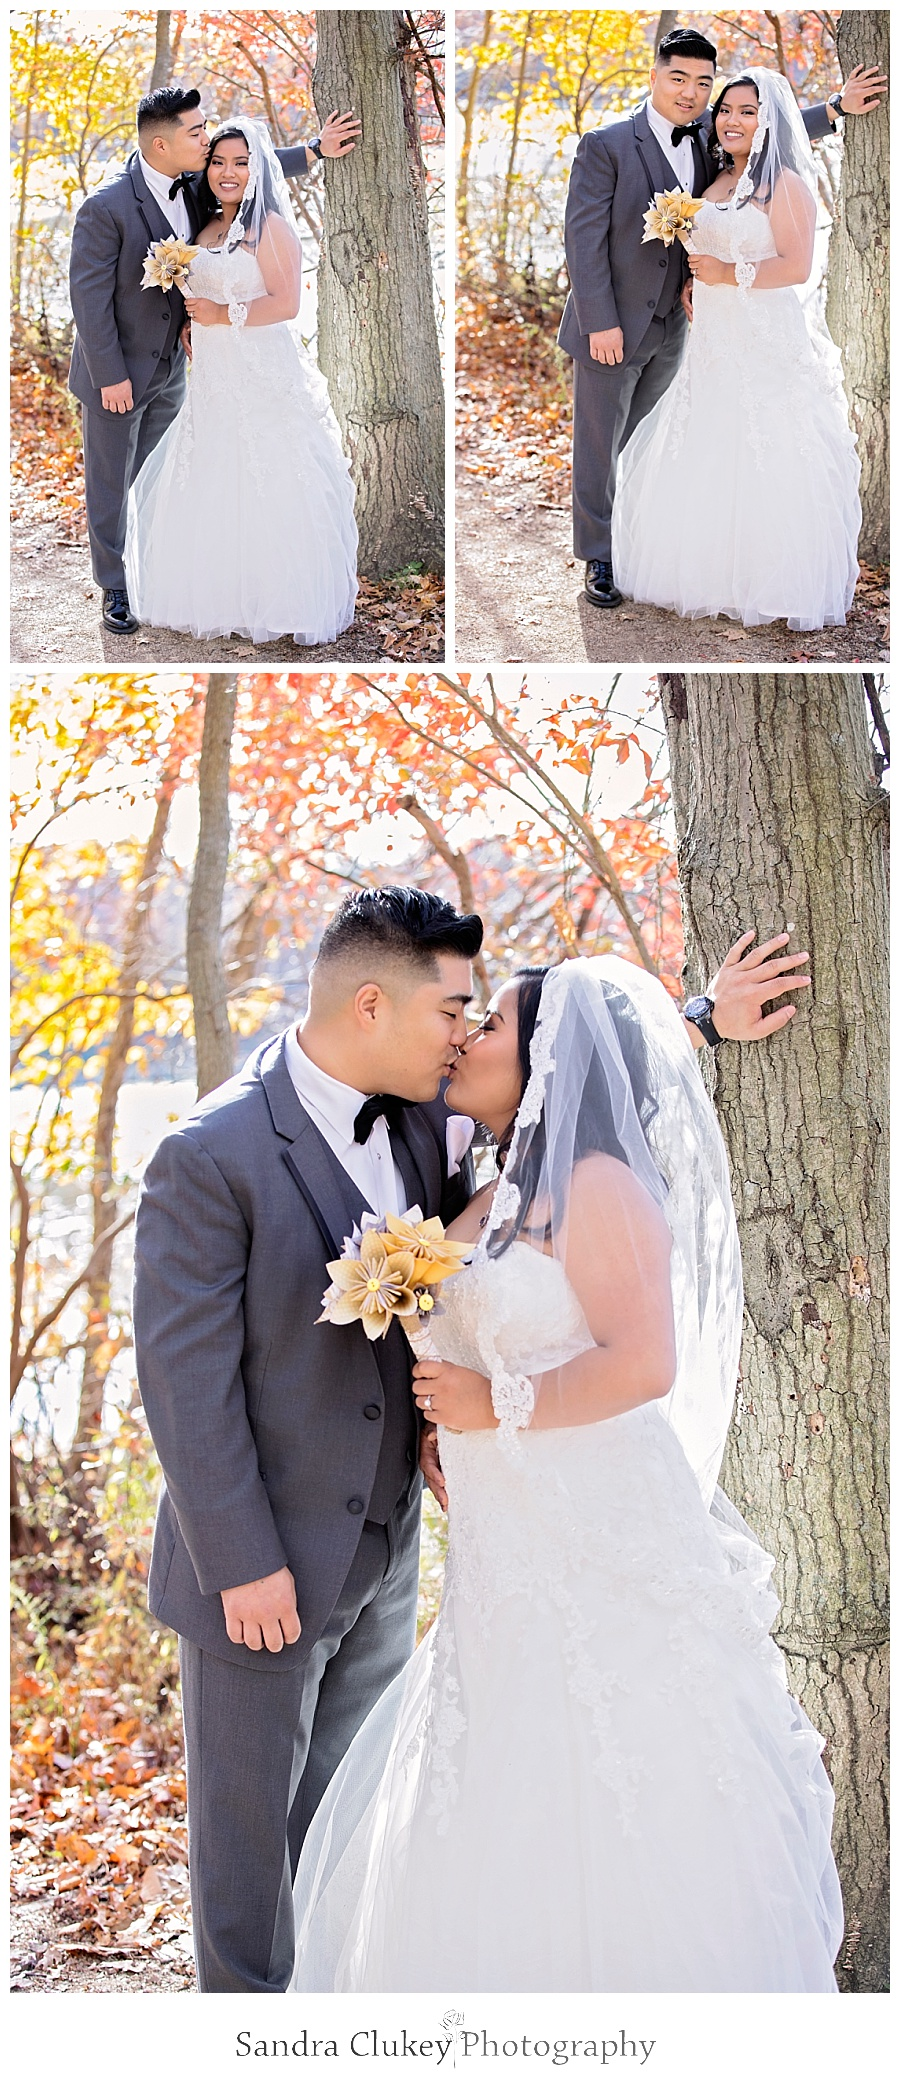 Playful moment of couple at first look